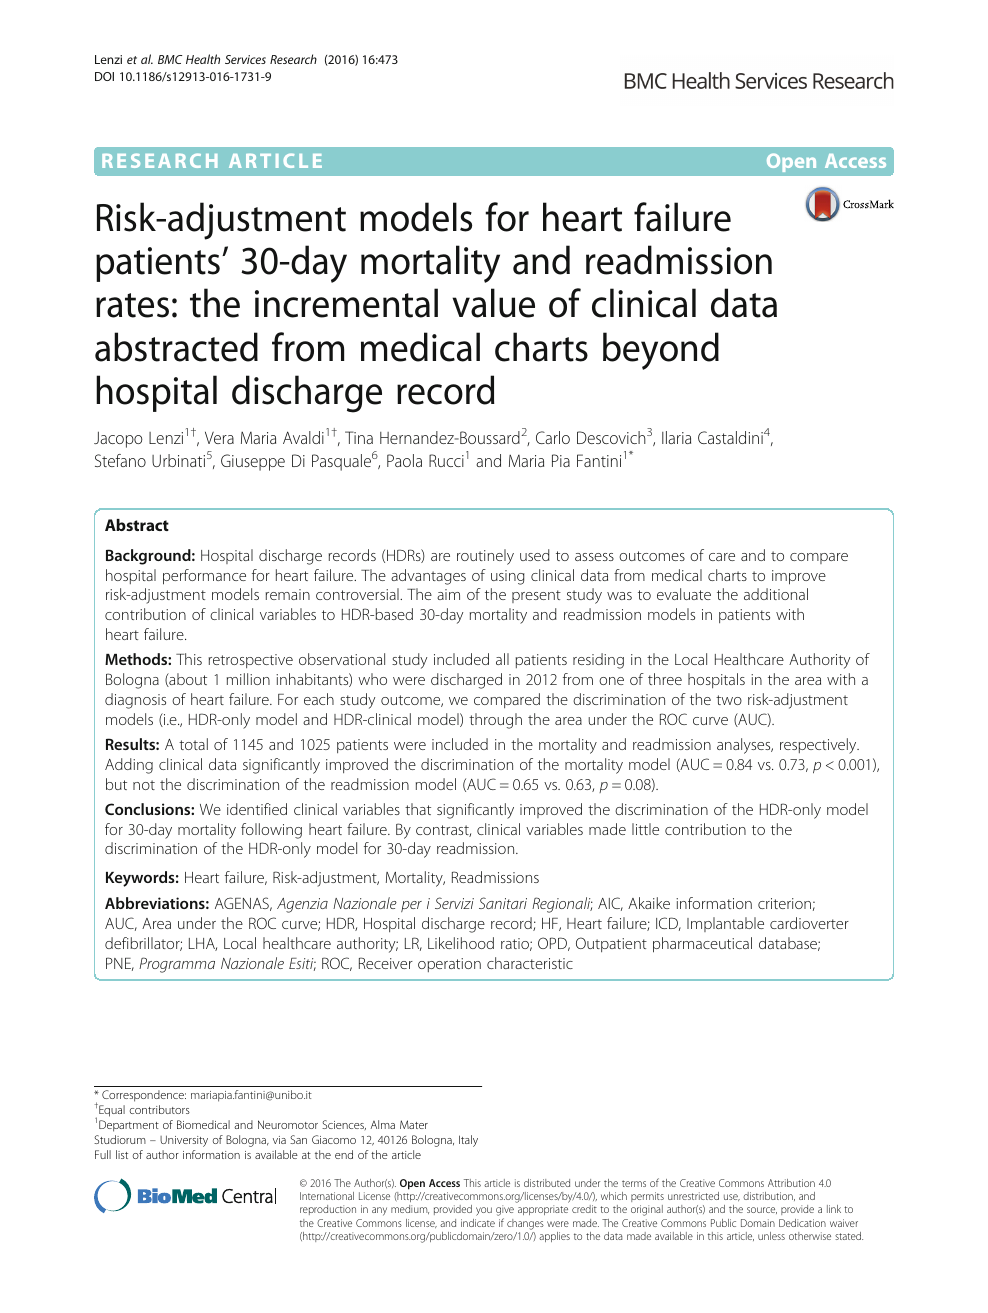 Risk-adjustment models for heart failure patients  30-day mortality ... 59e69fe52cf